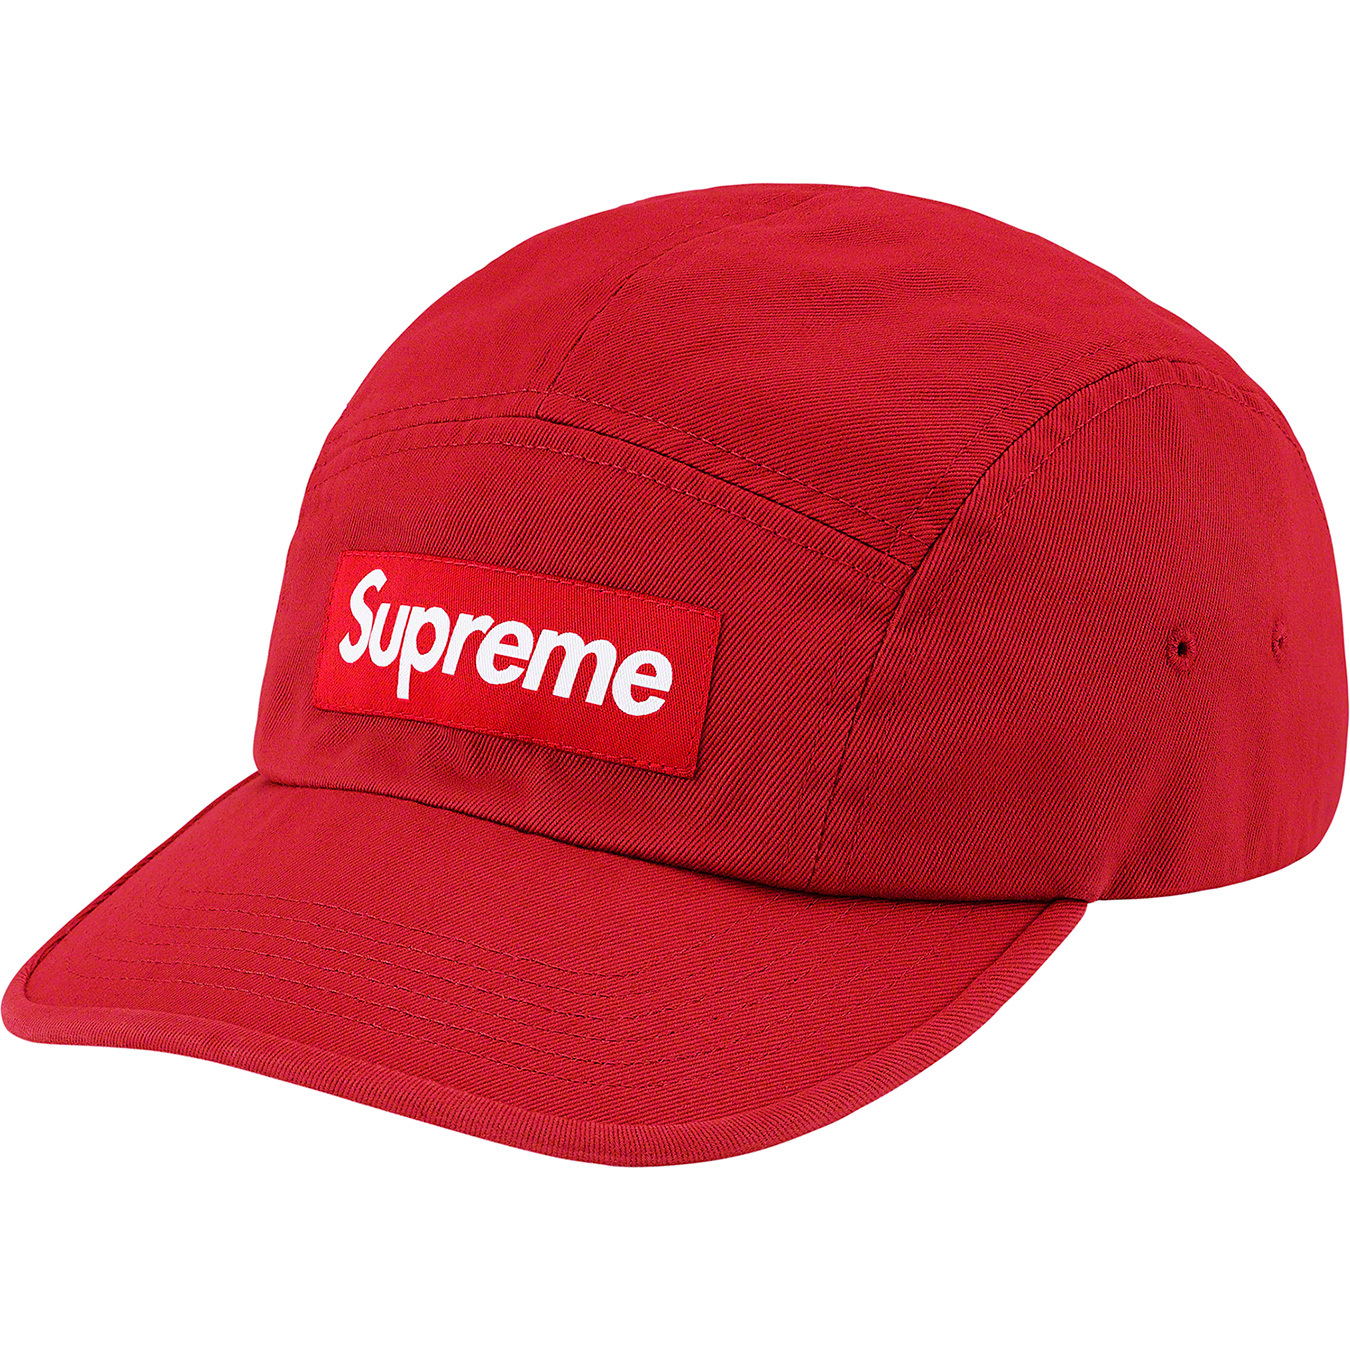 supreme-21ss-spring-summer-washed-chino-twill-camp-cap